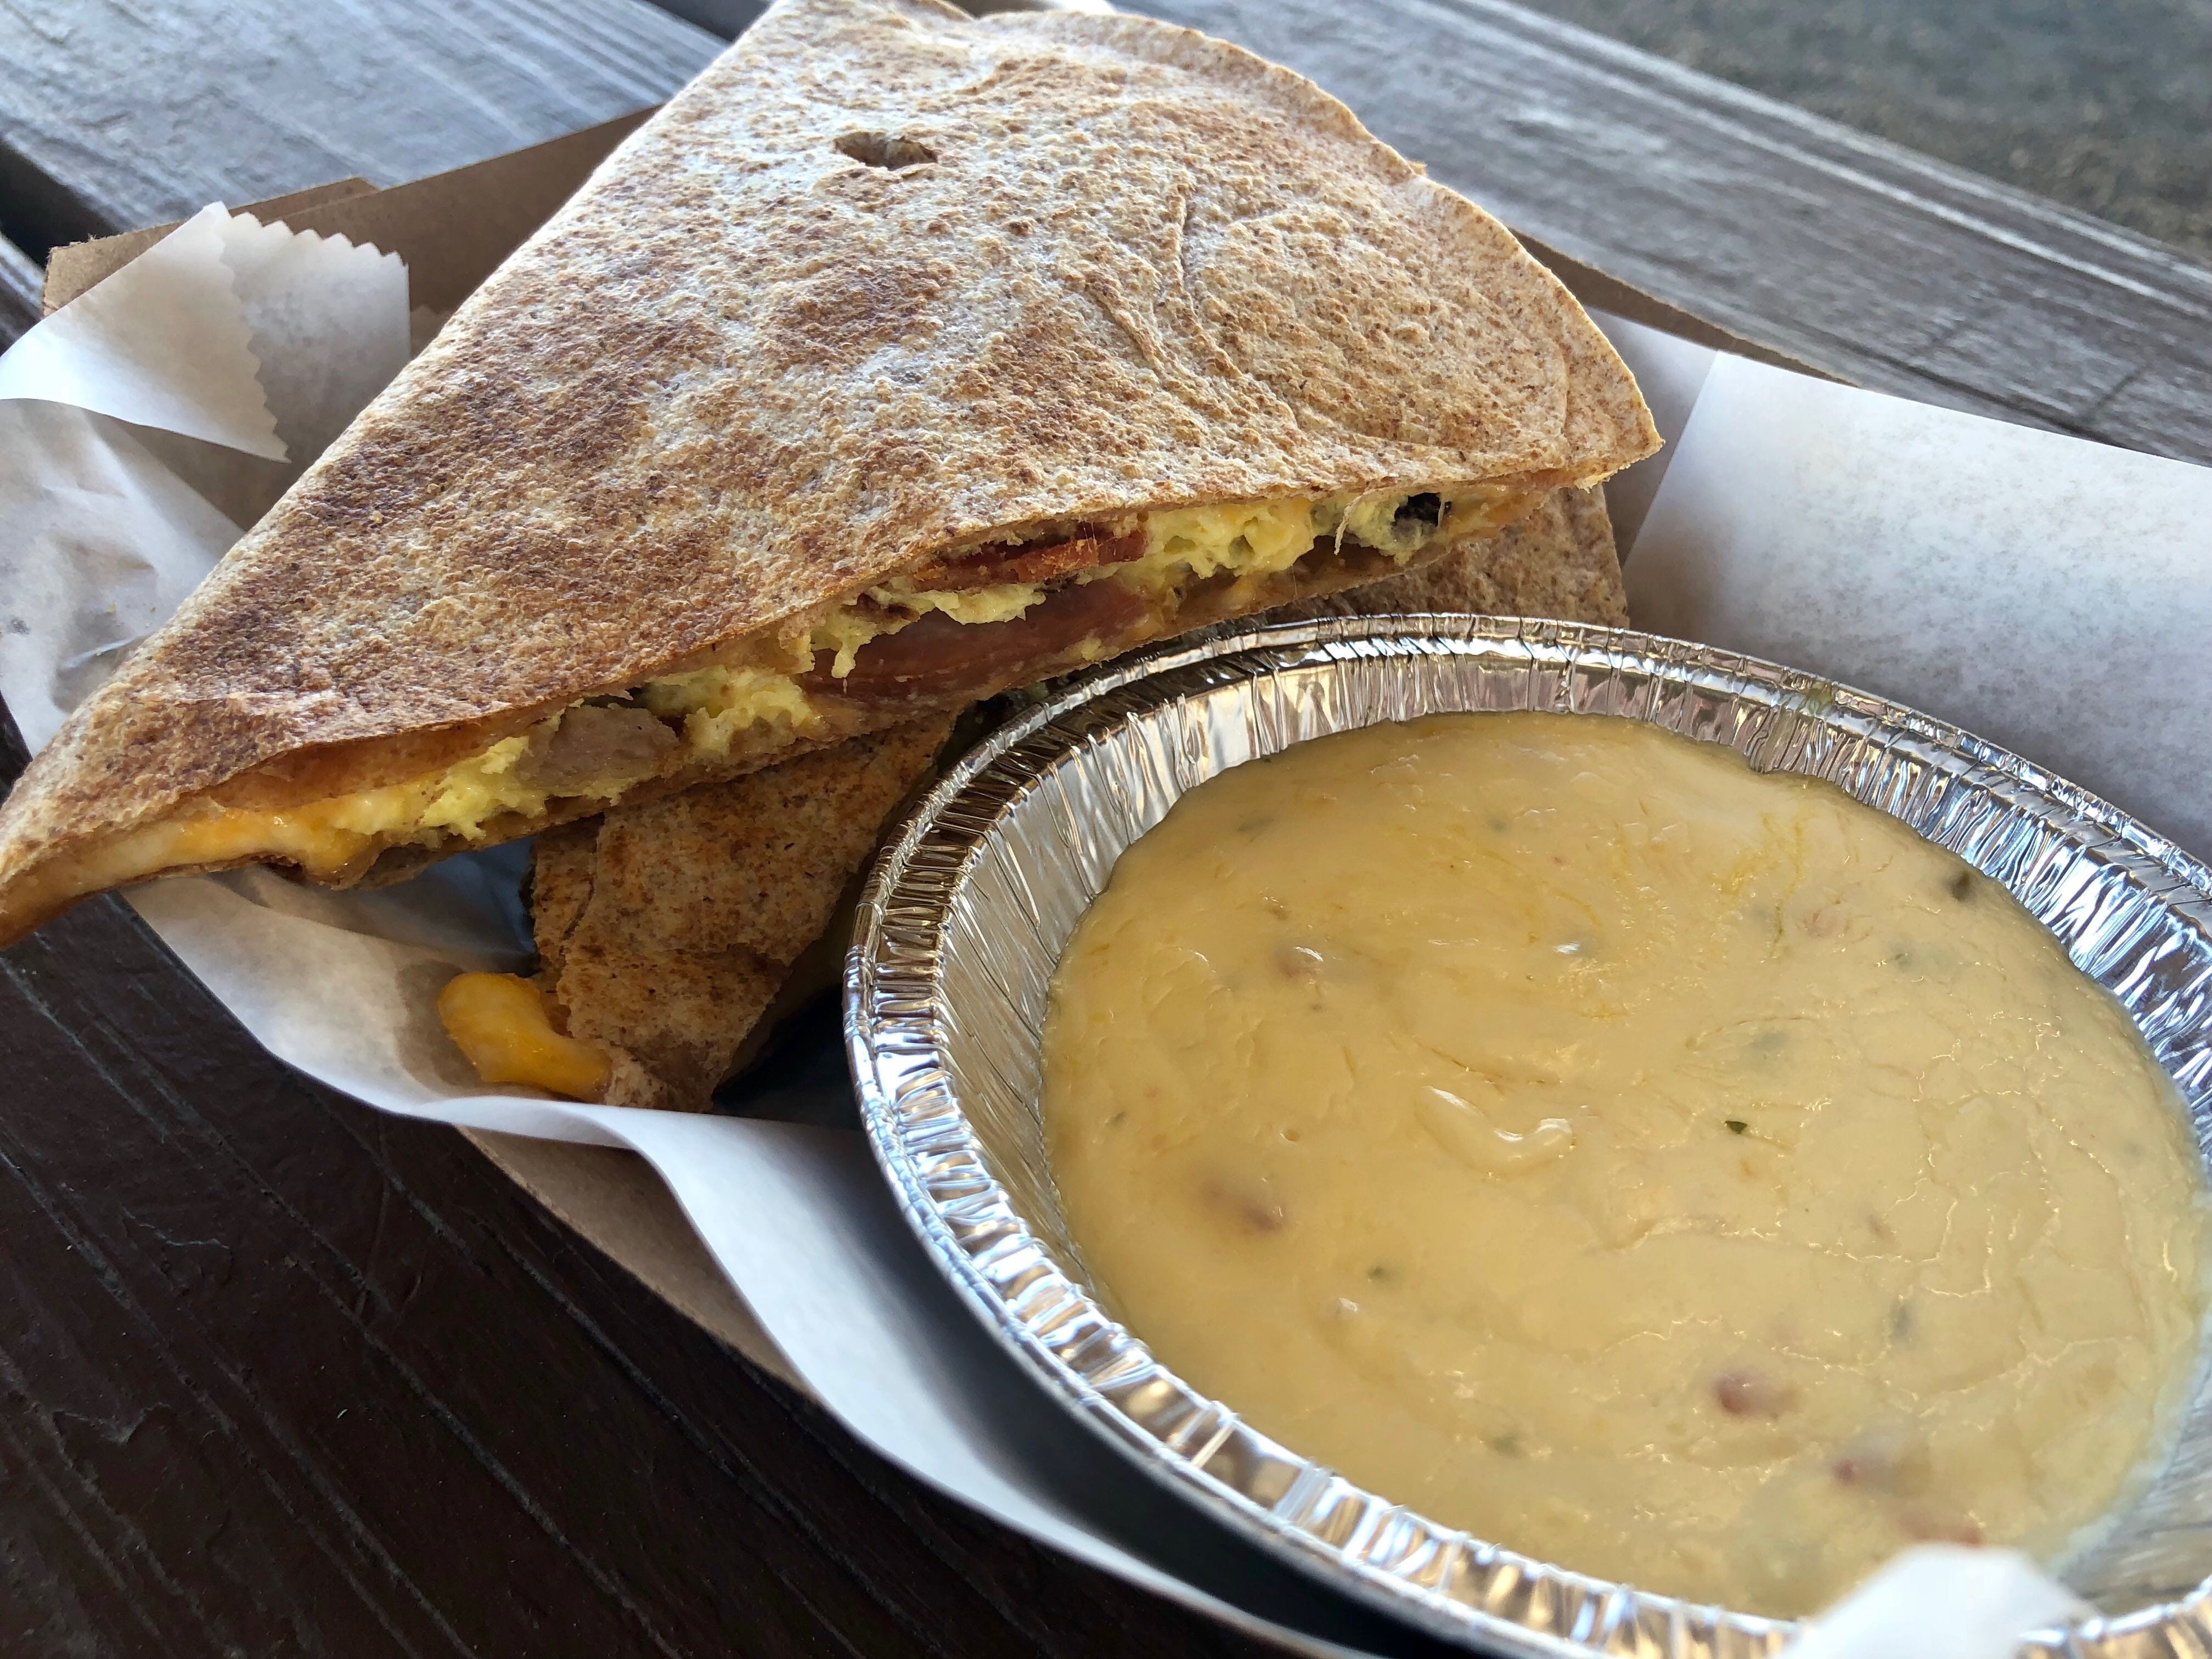 A  meat lovers breakfast quesadilla filled with bacon, sausage and ham at Fresh Harvest Cafe in Bonita Springs.